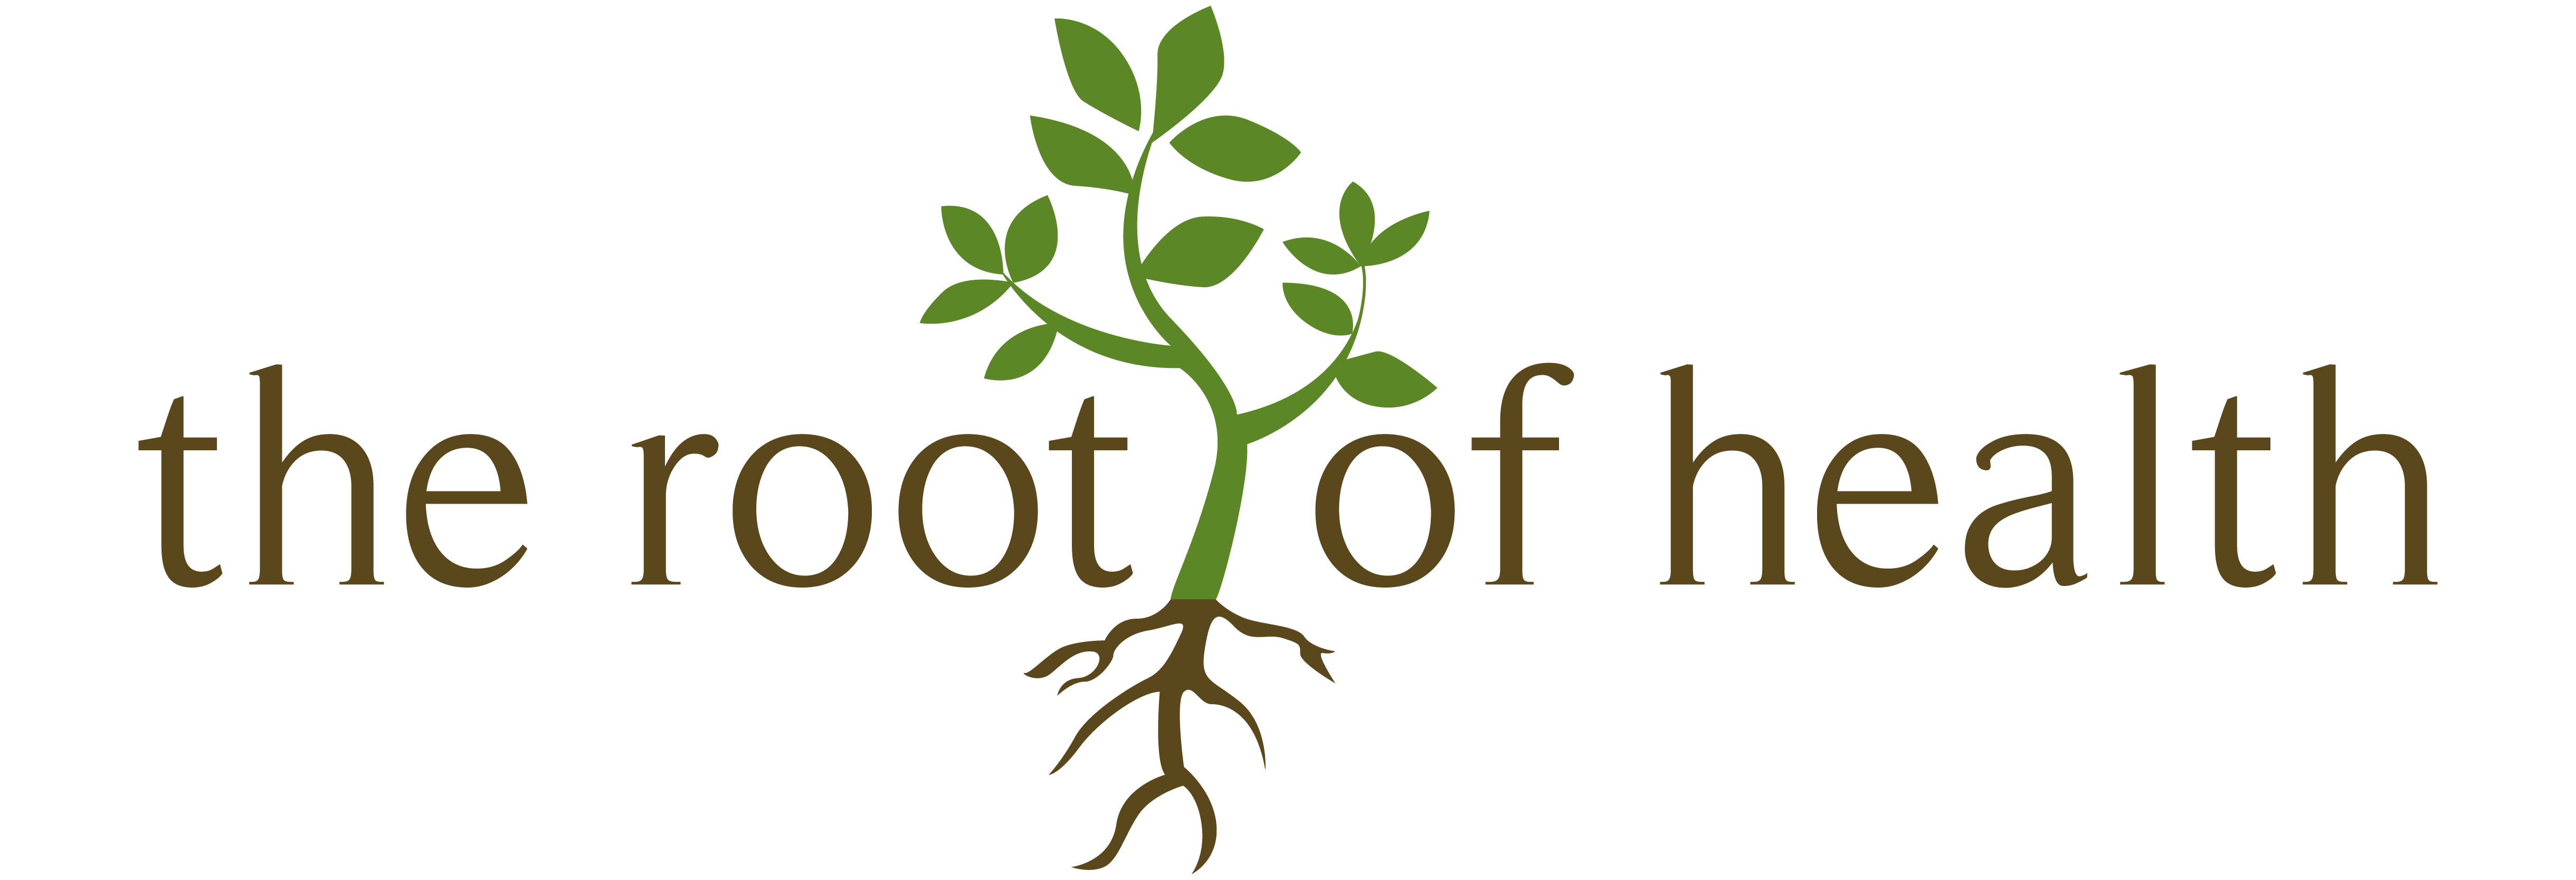 Root of Health